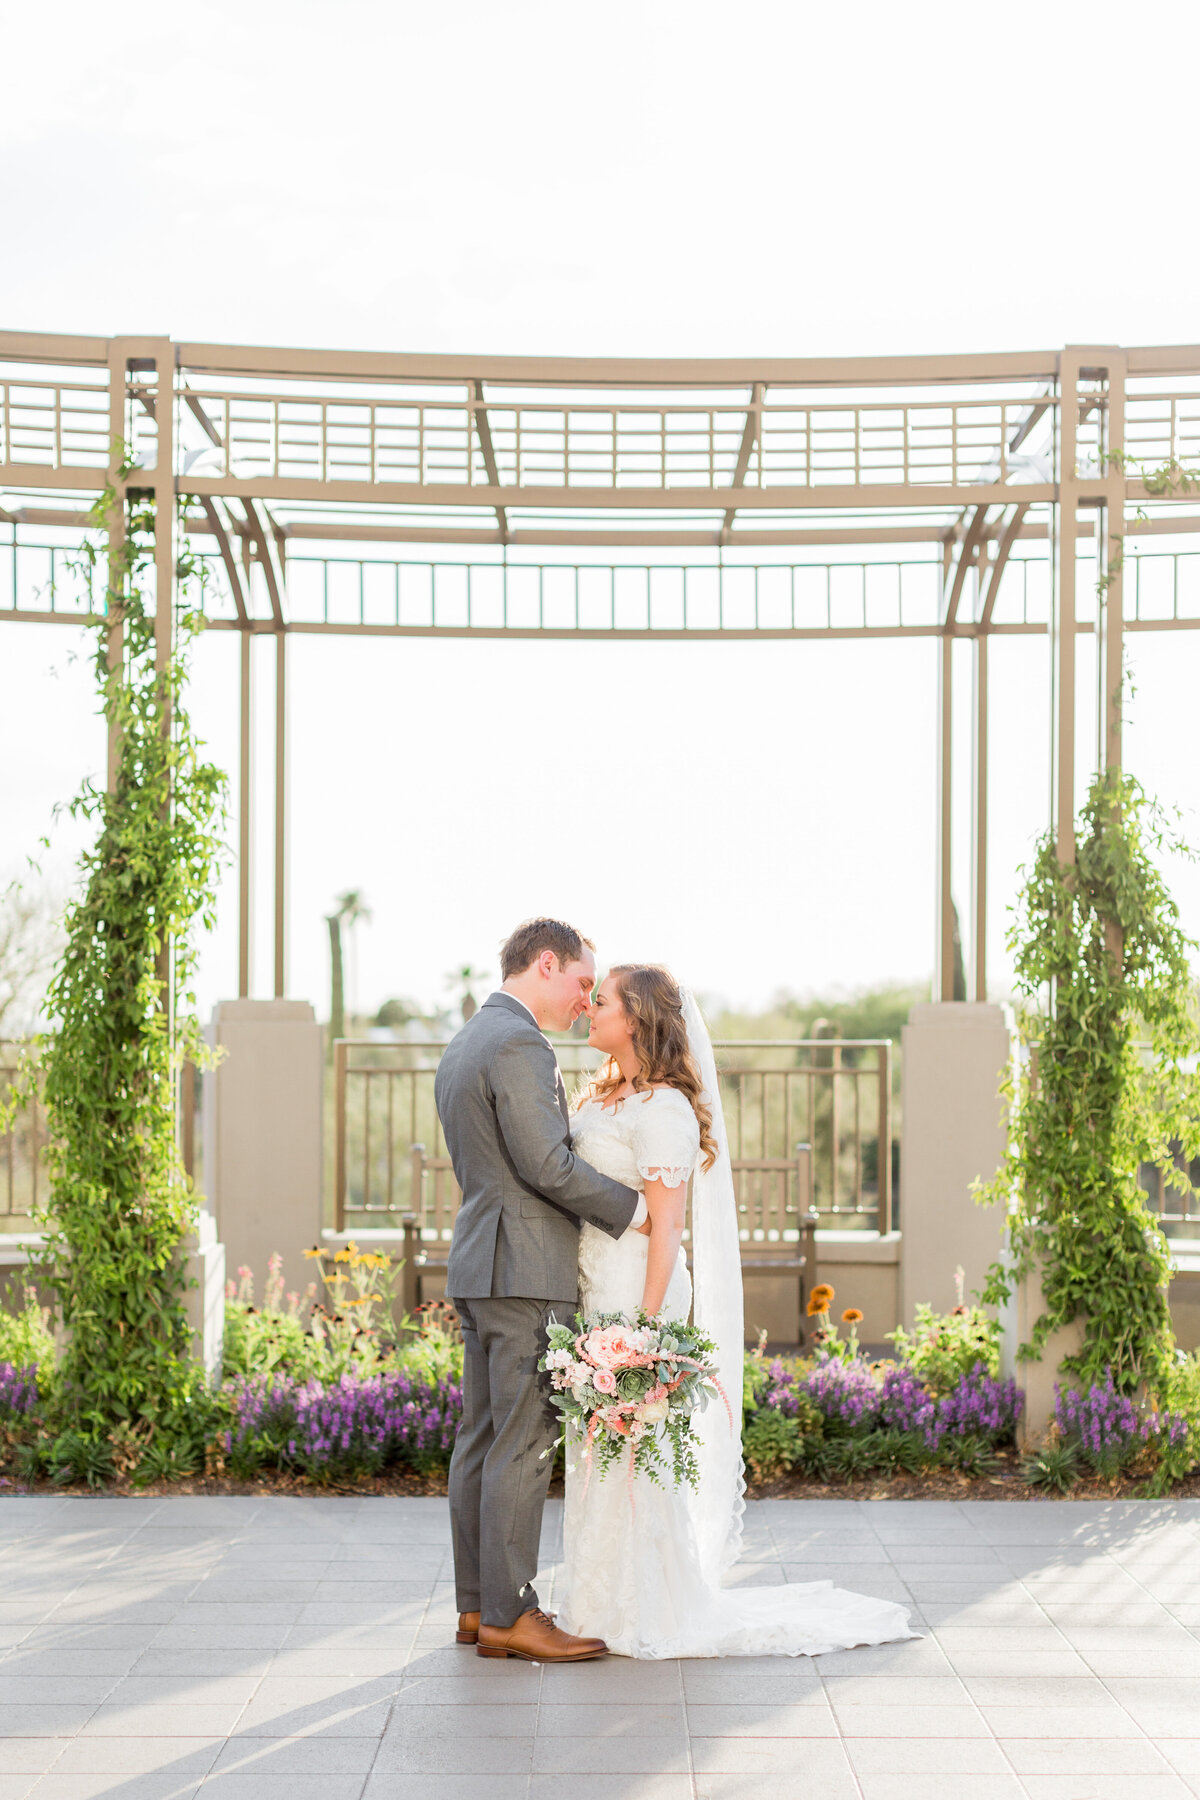 FAVORITESBrett and Natalie Tucson LDS Temple Wedding 1050